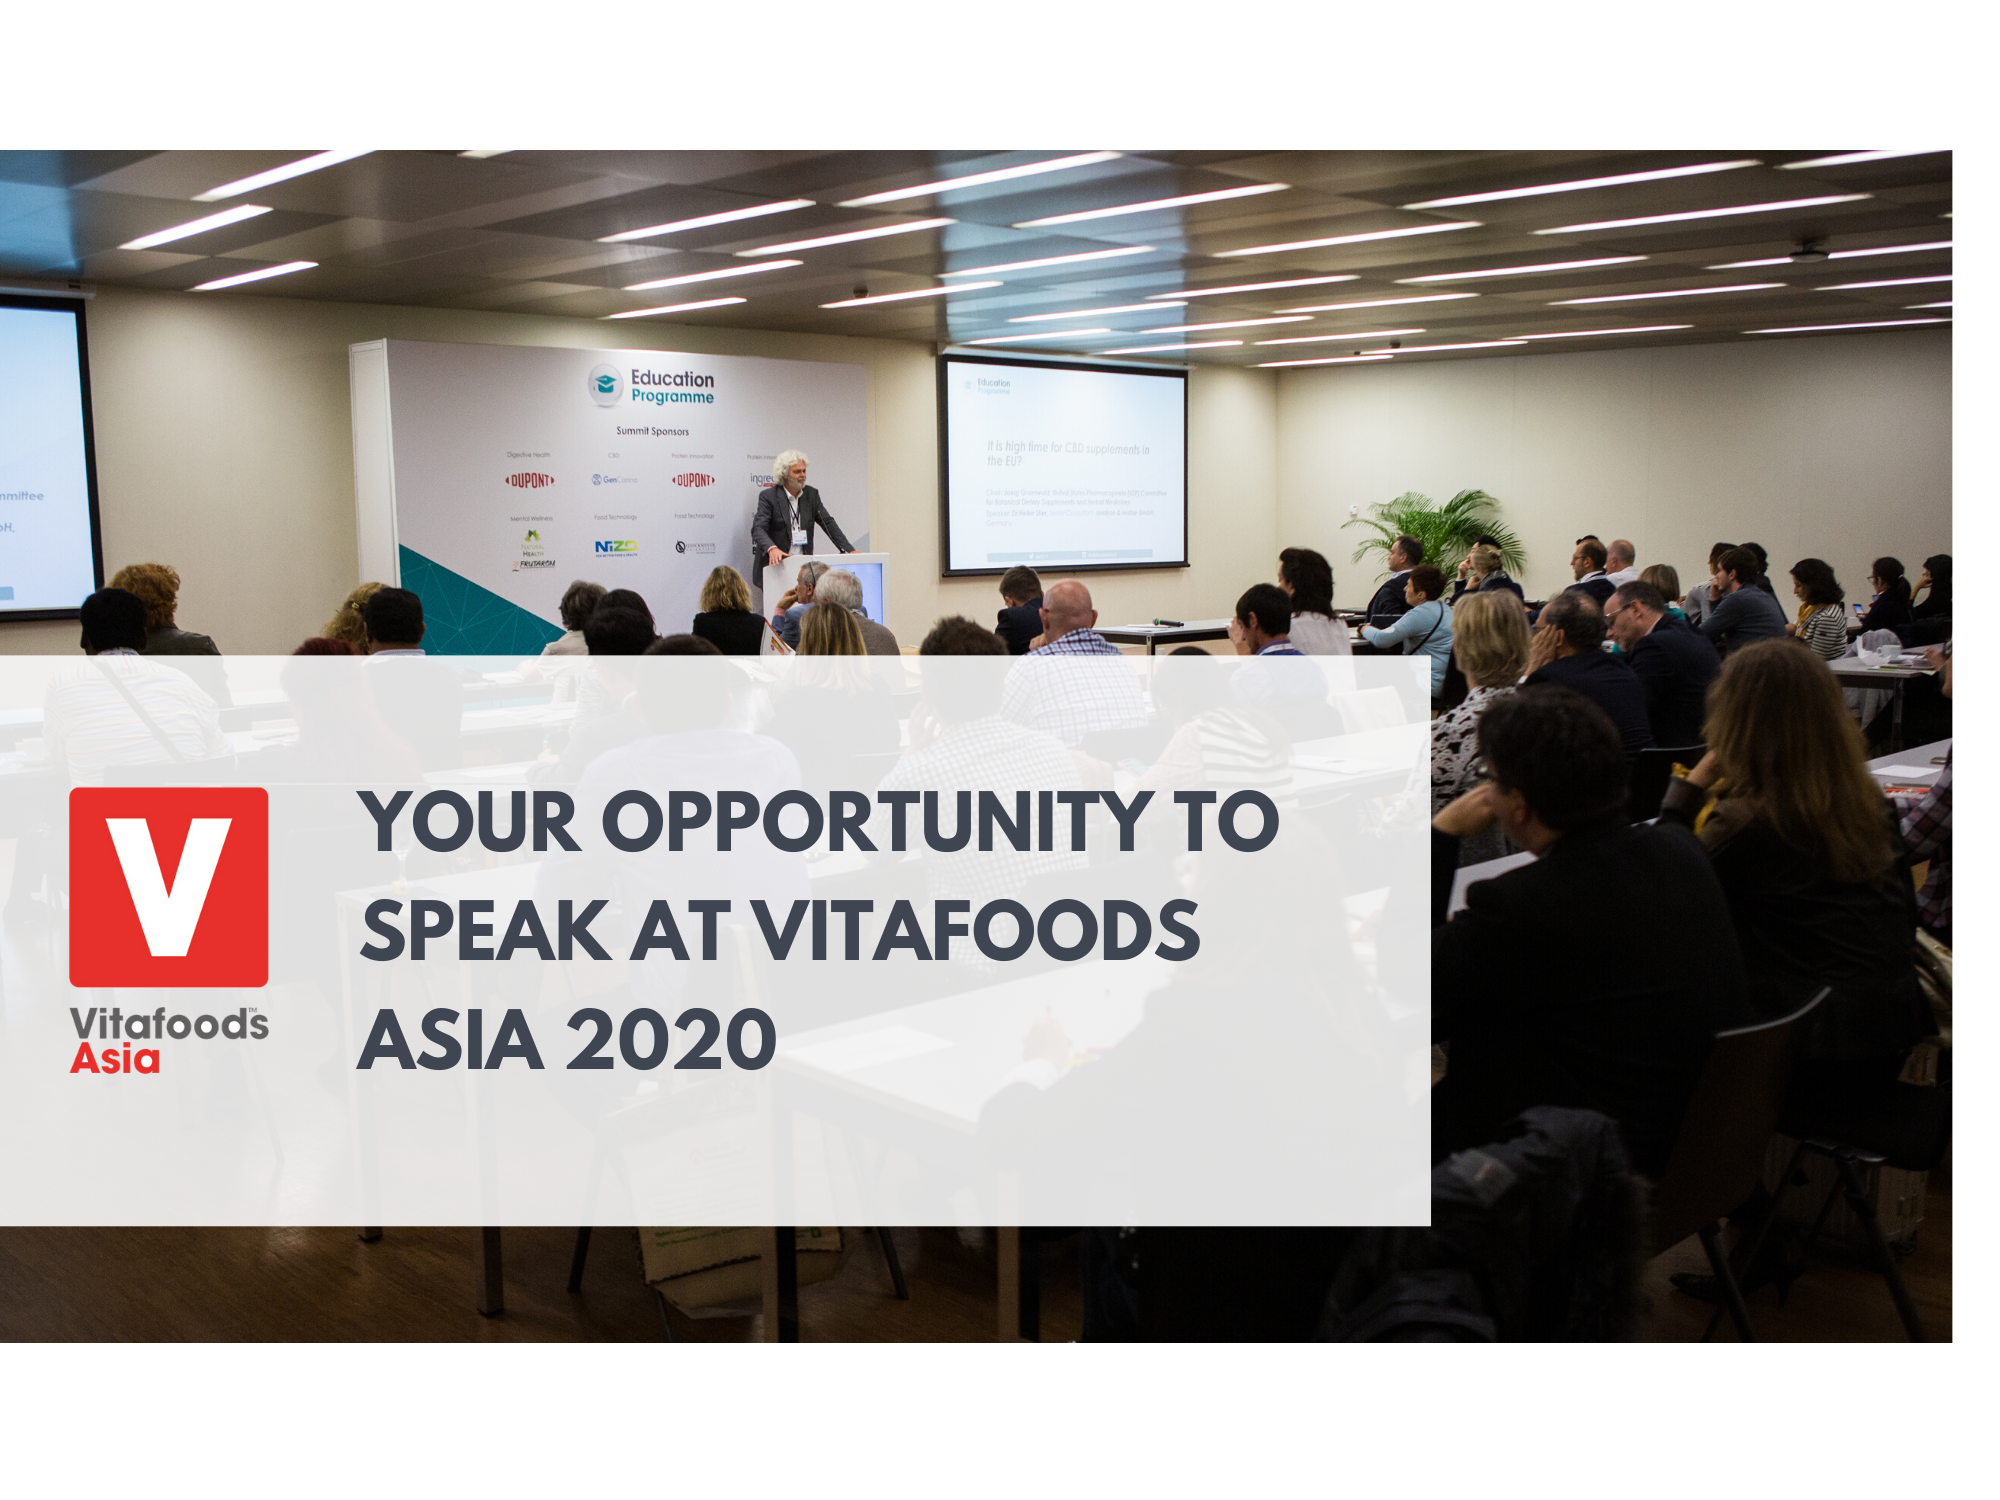 Speak at Vitafoods Asia2020 to reach new targeted audiences and share expertise on the most relevant industry themes. Find out how to apply and become the next industry thought leader.